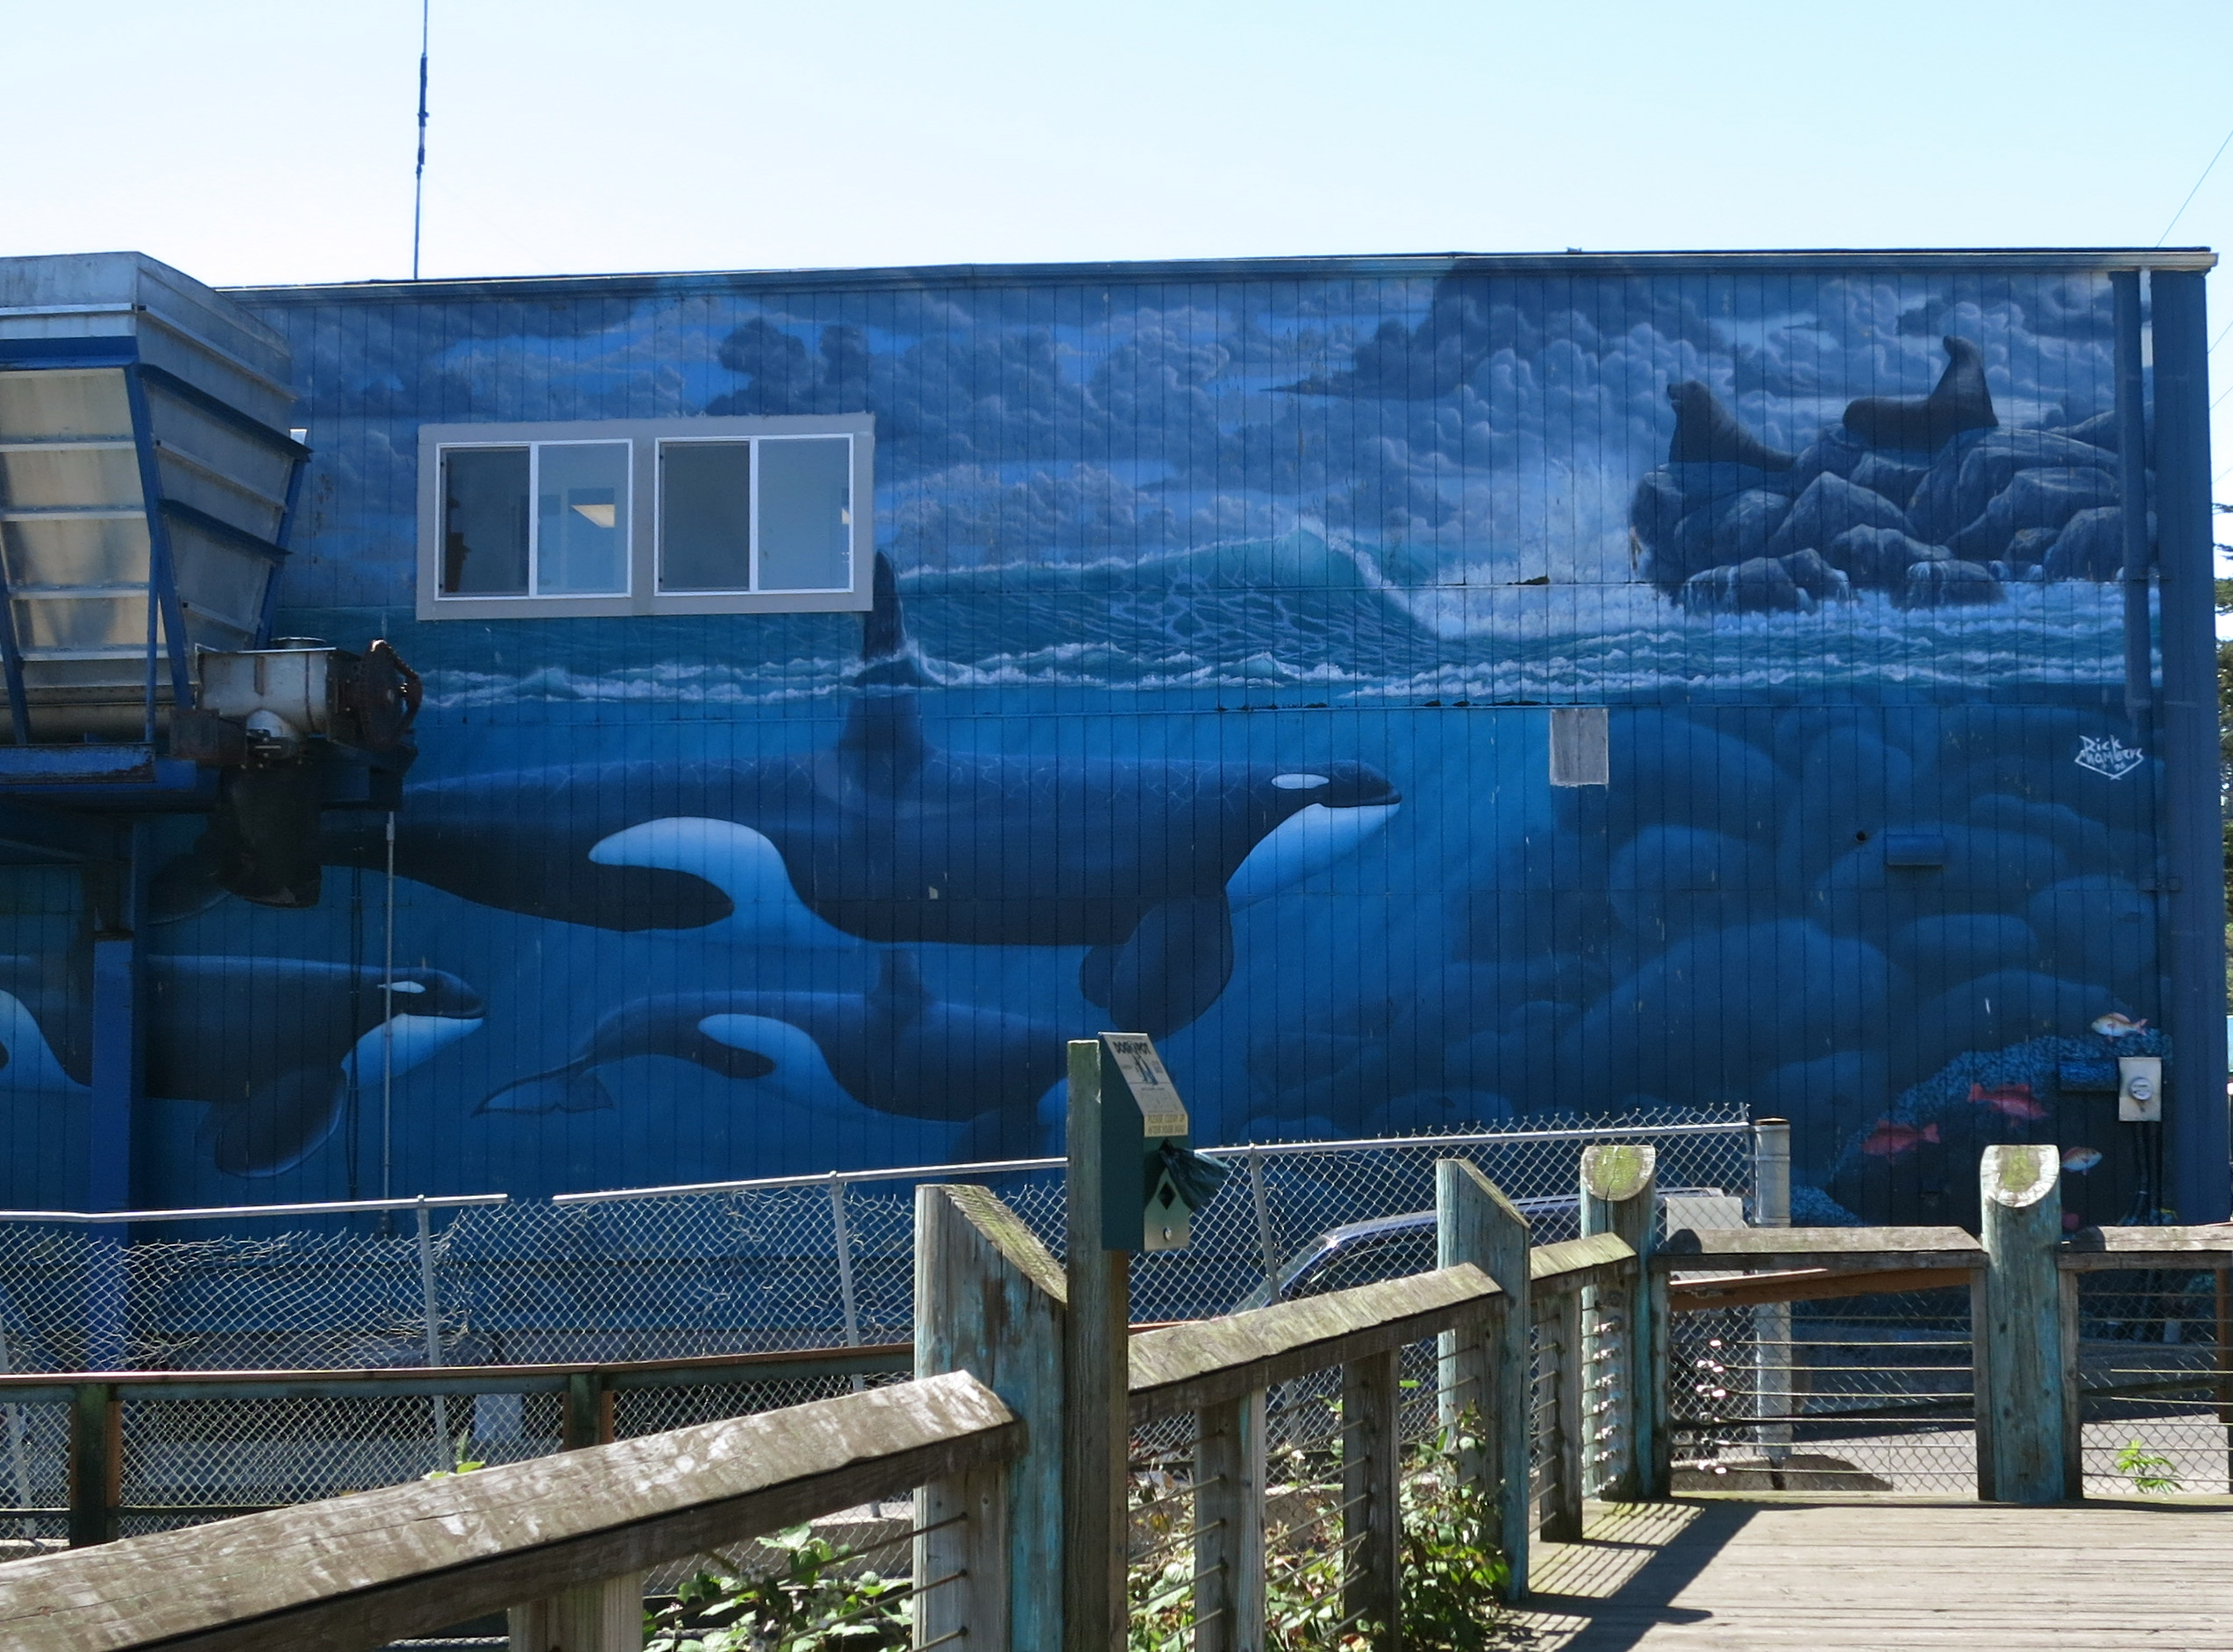 yaquina bay lighthouse paint your landscape sailor s knot colorful fishing net spool ocean mural on the bay